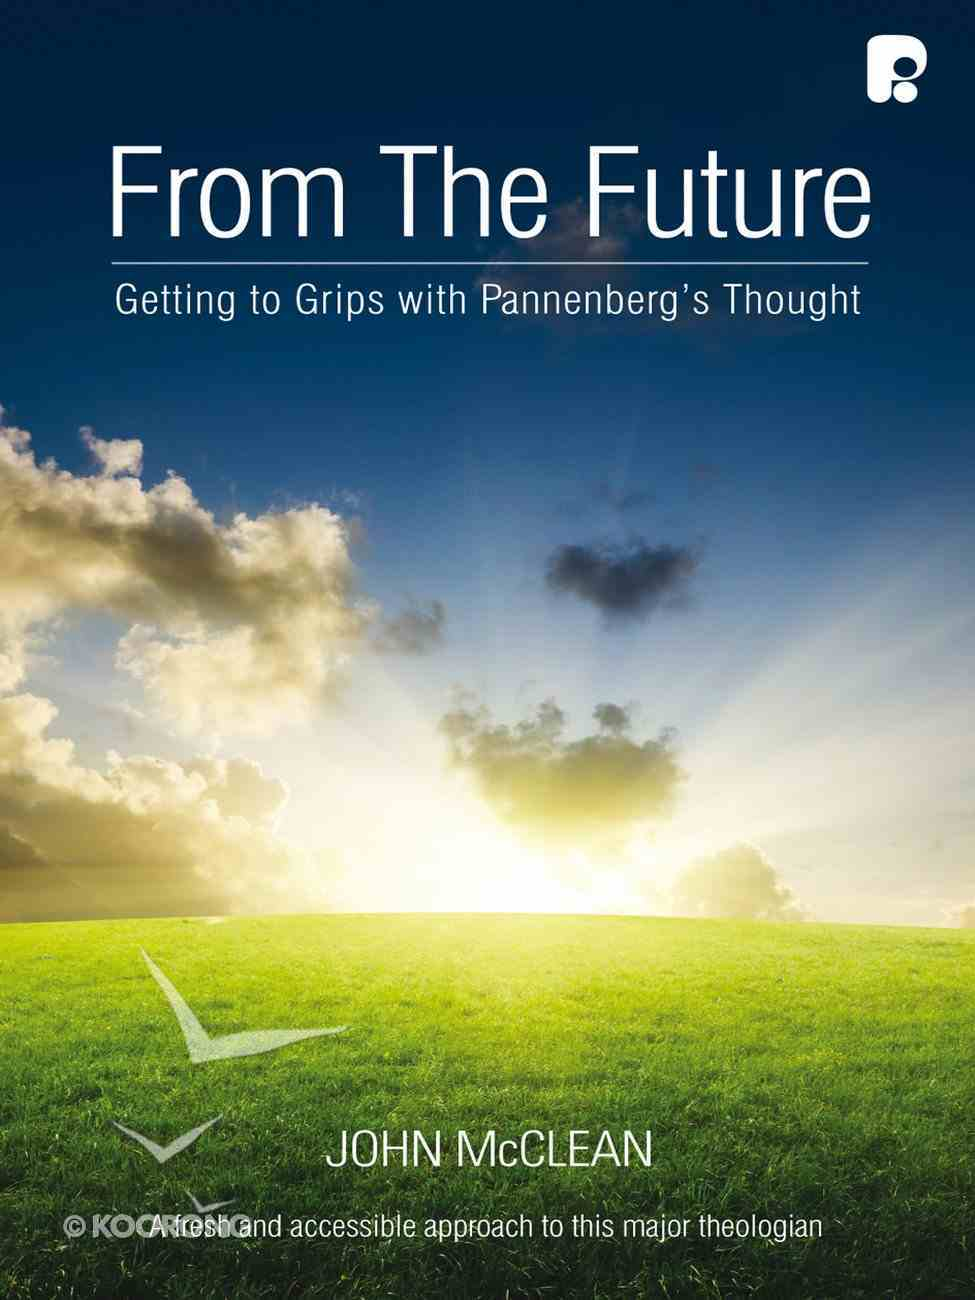 From the Future: Getting to Grips With Pannenberg's Thought eBook